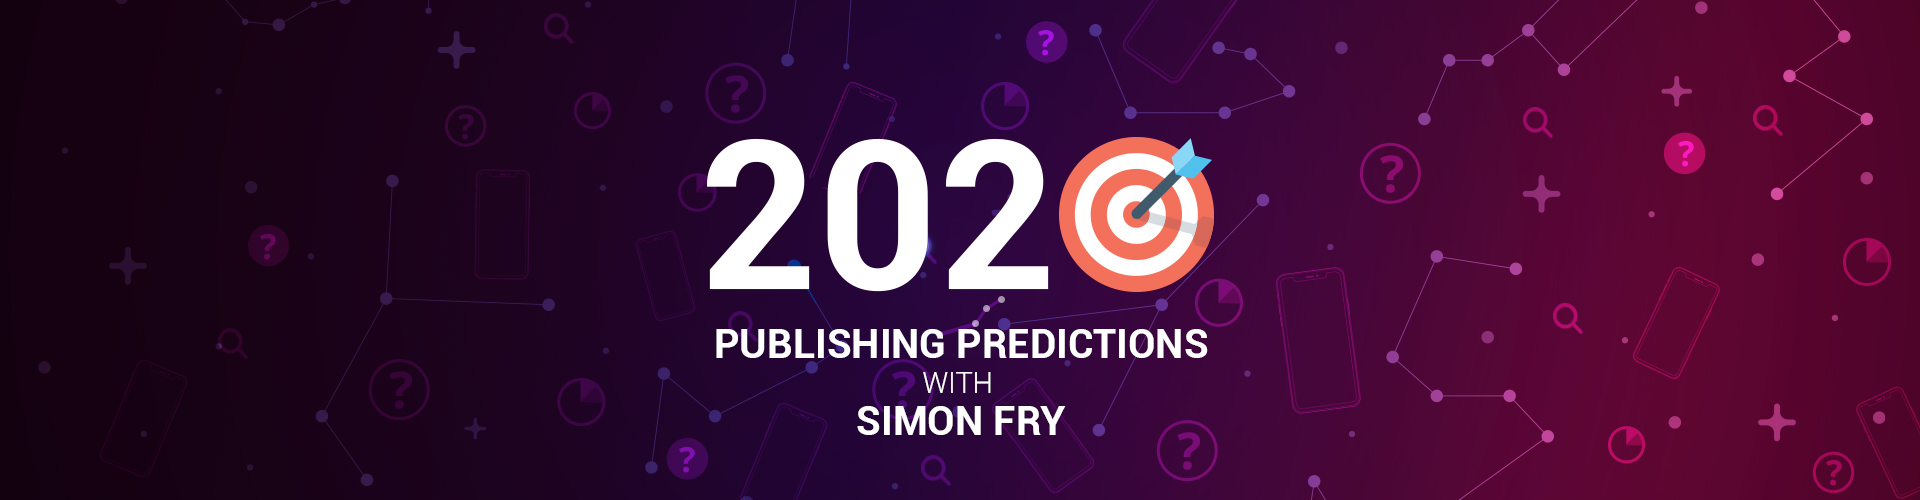 Image of 2020 Publishing Predictions with Simon Fry